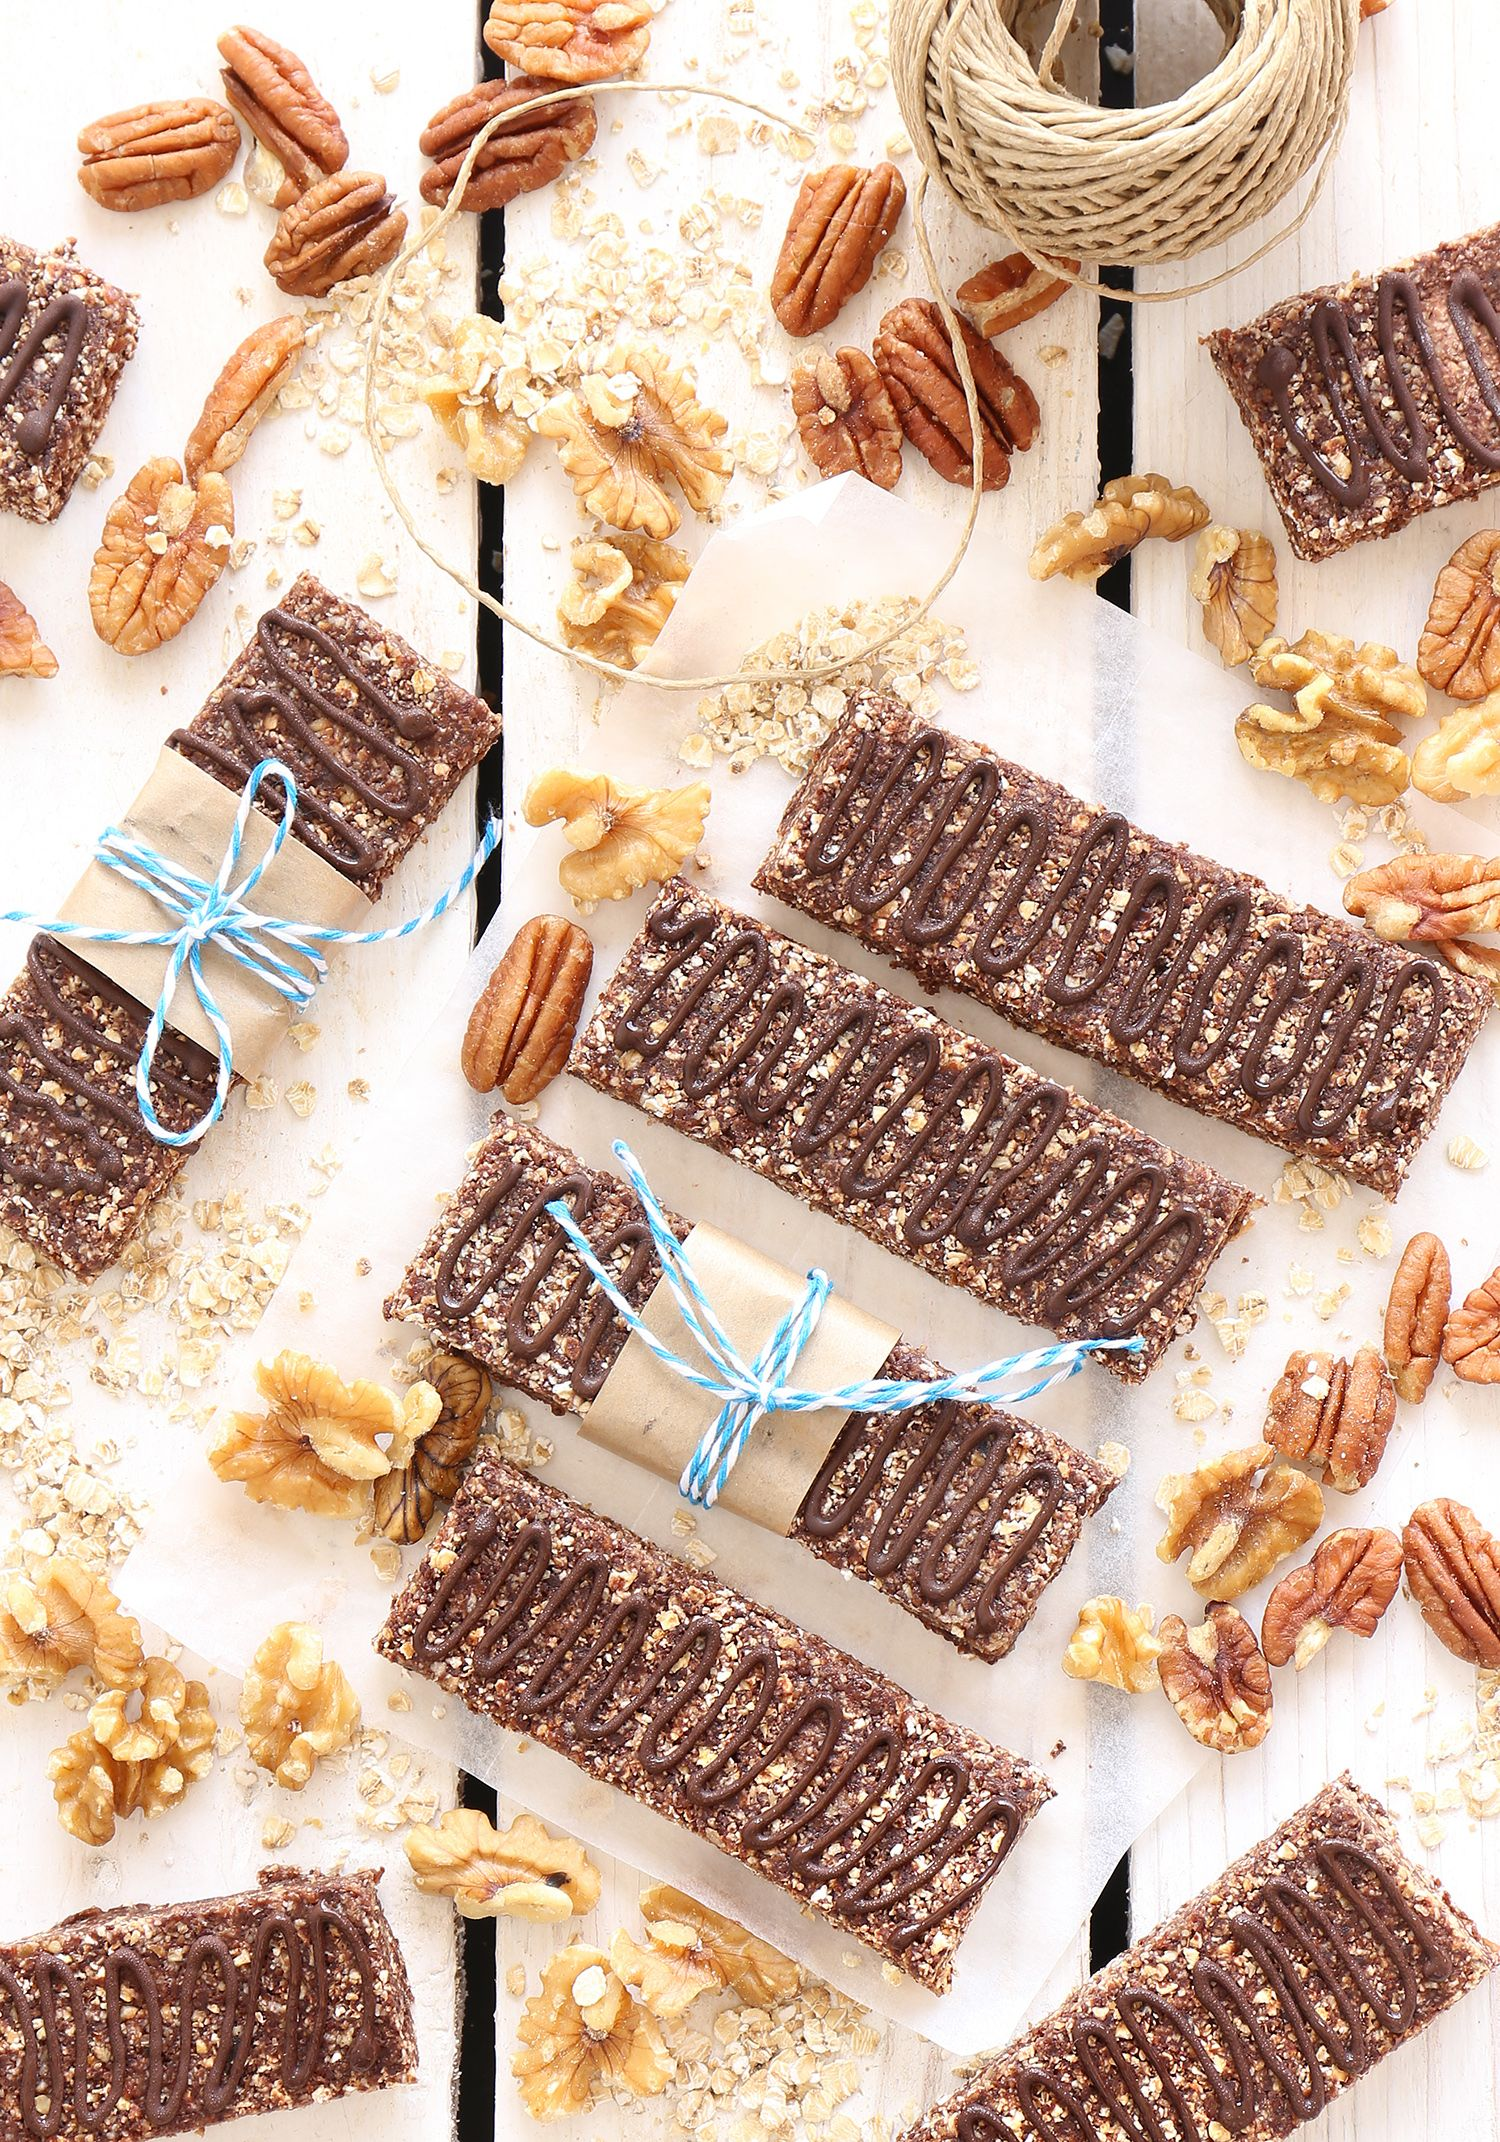 Homemade Protein Bars with Oatmeal and Chocolate